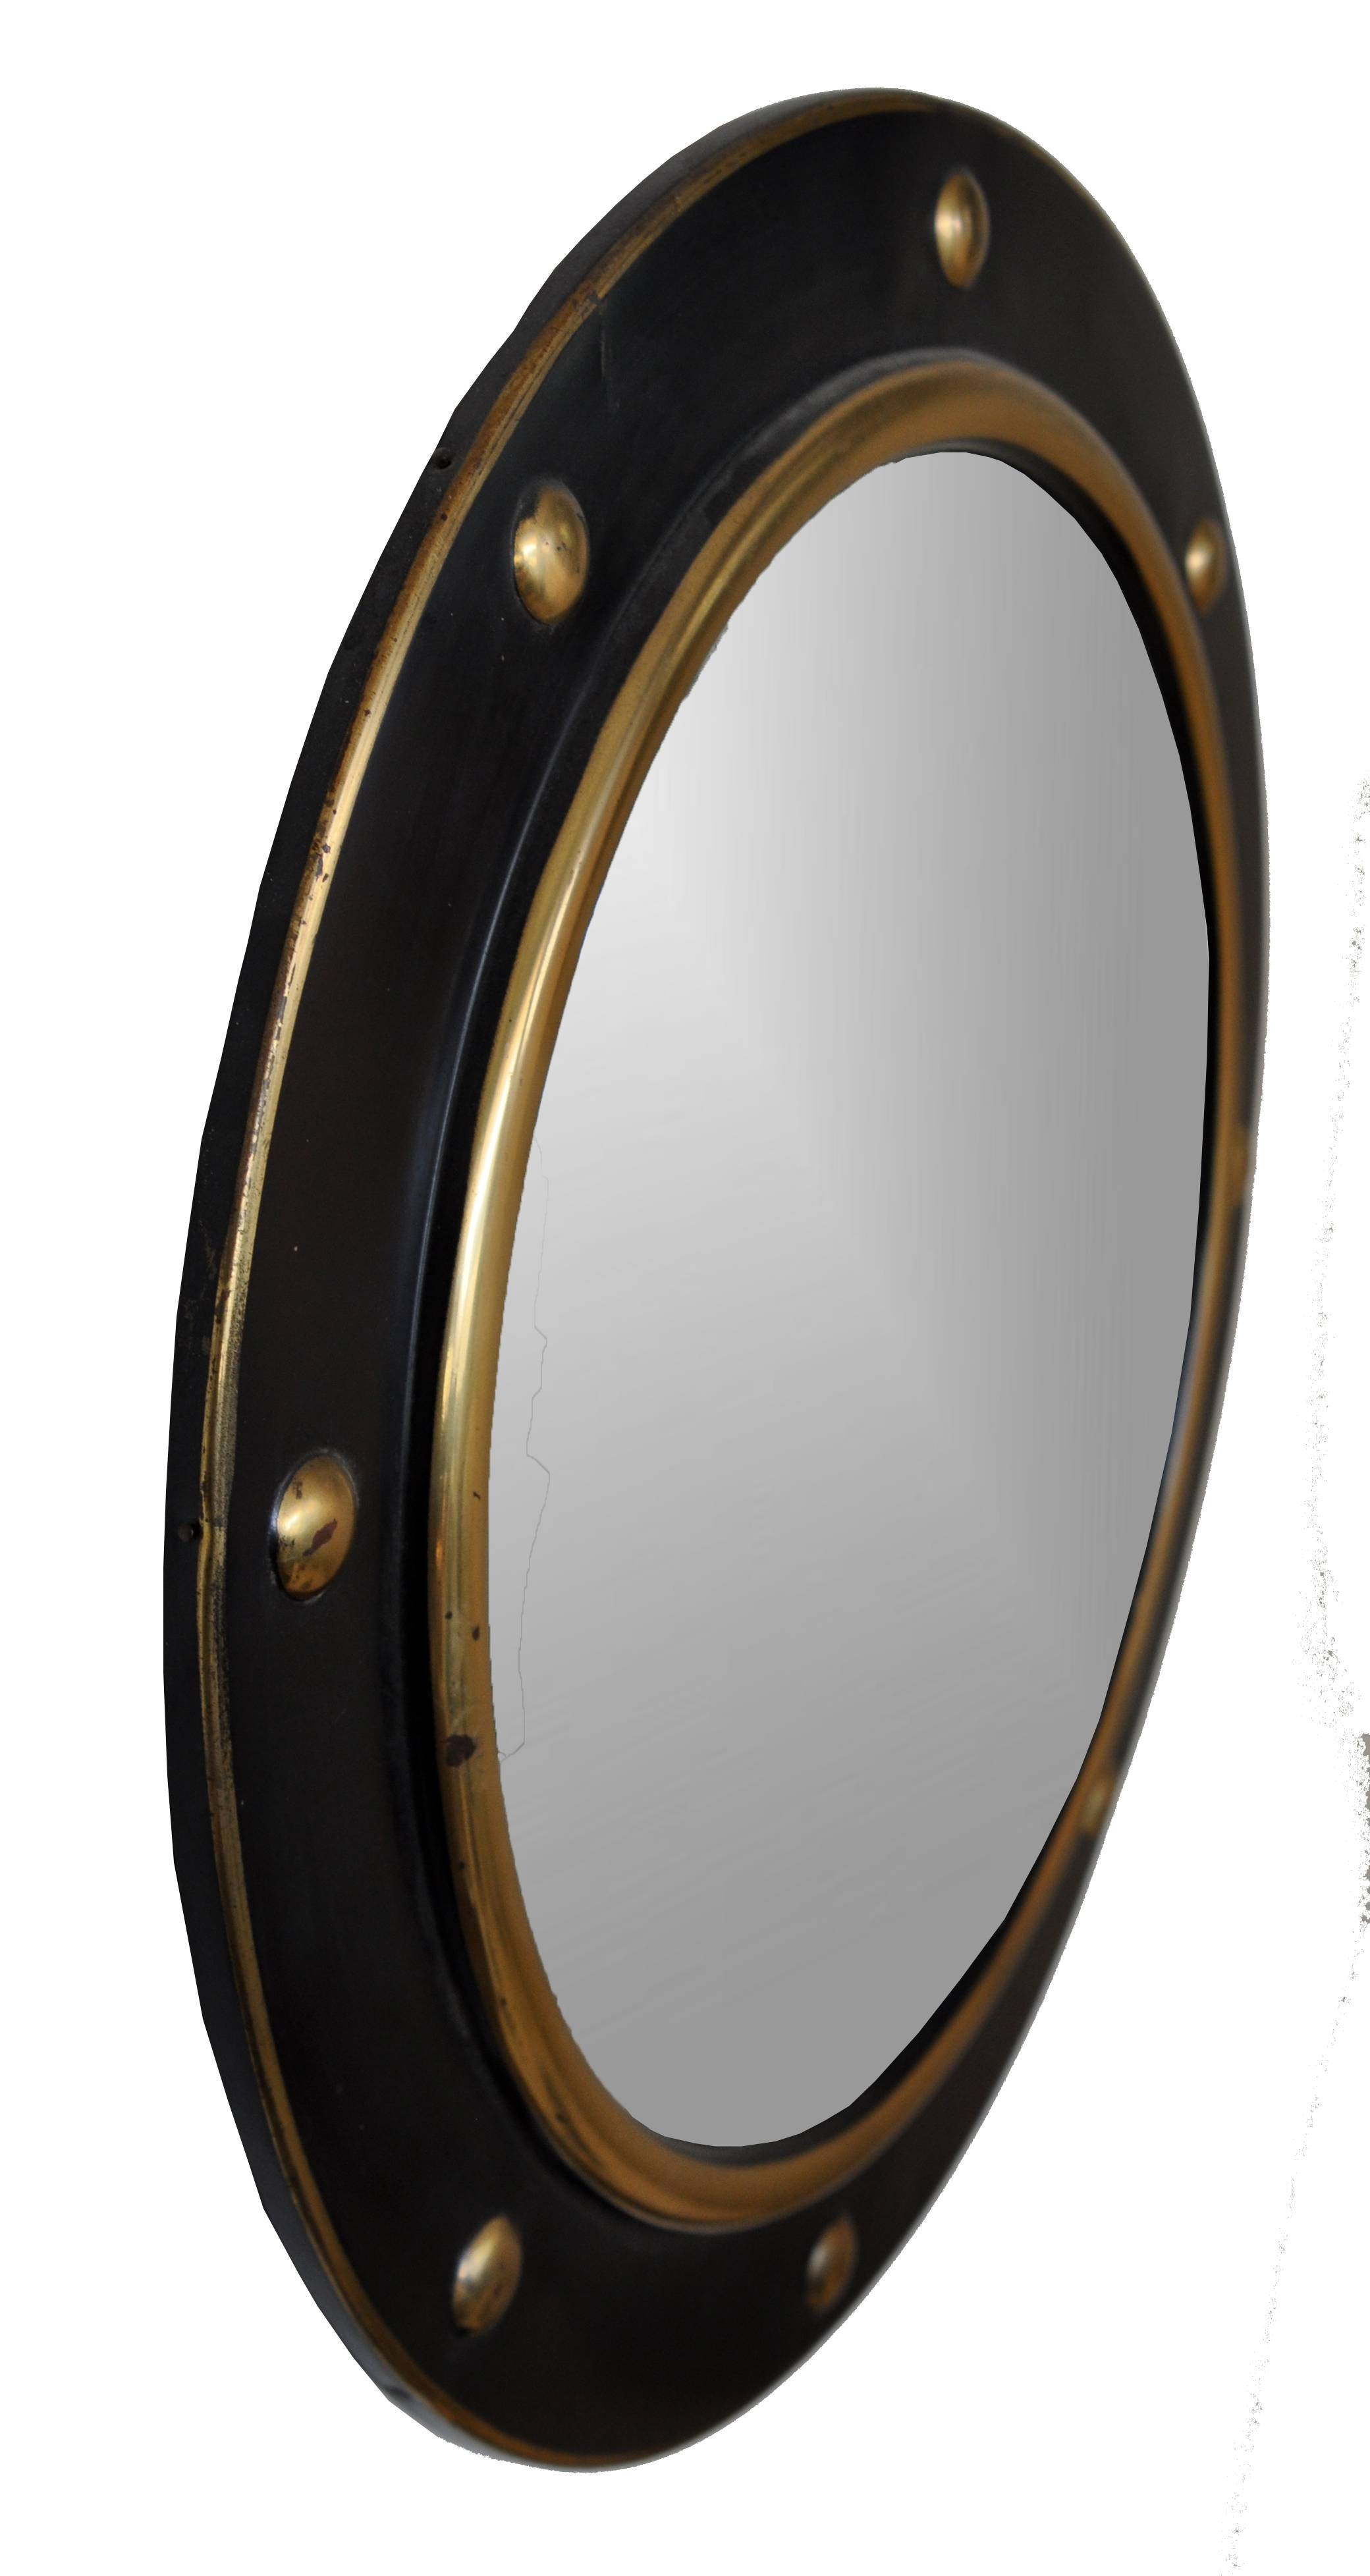 Antique Round Gilt Ball Convex Mirror - Mecox Gardens intended for Round Convex Mirrors (Image 8 of 25)